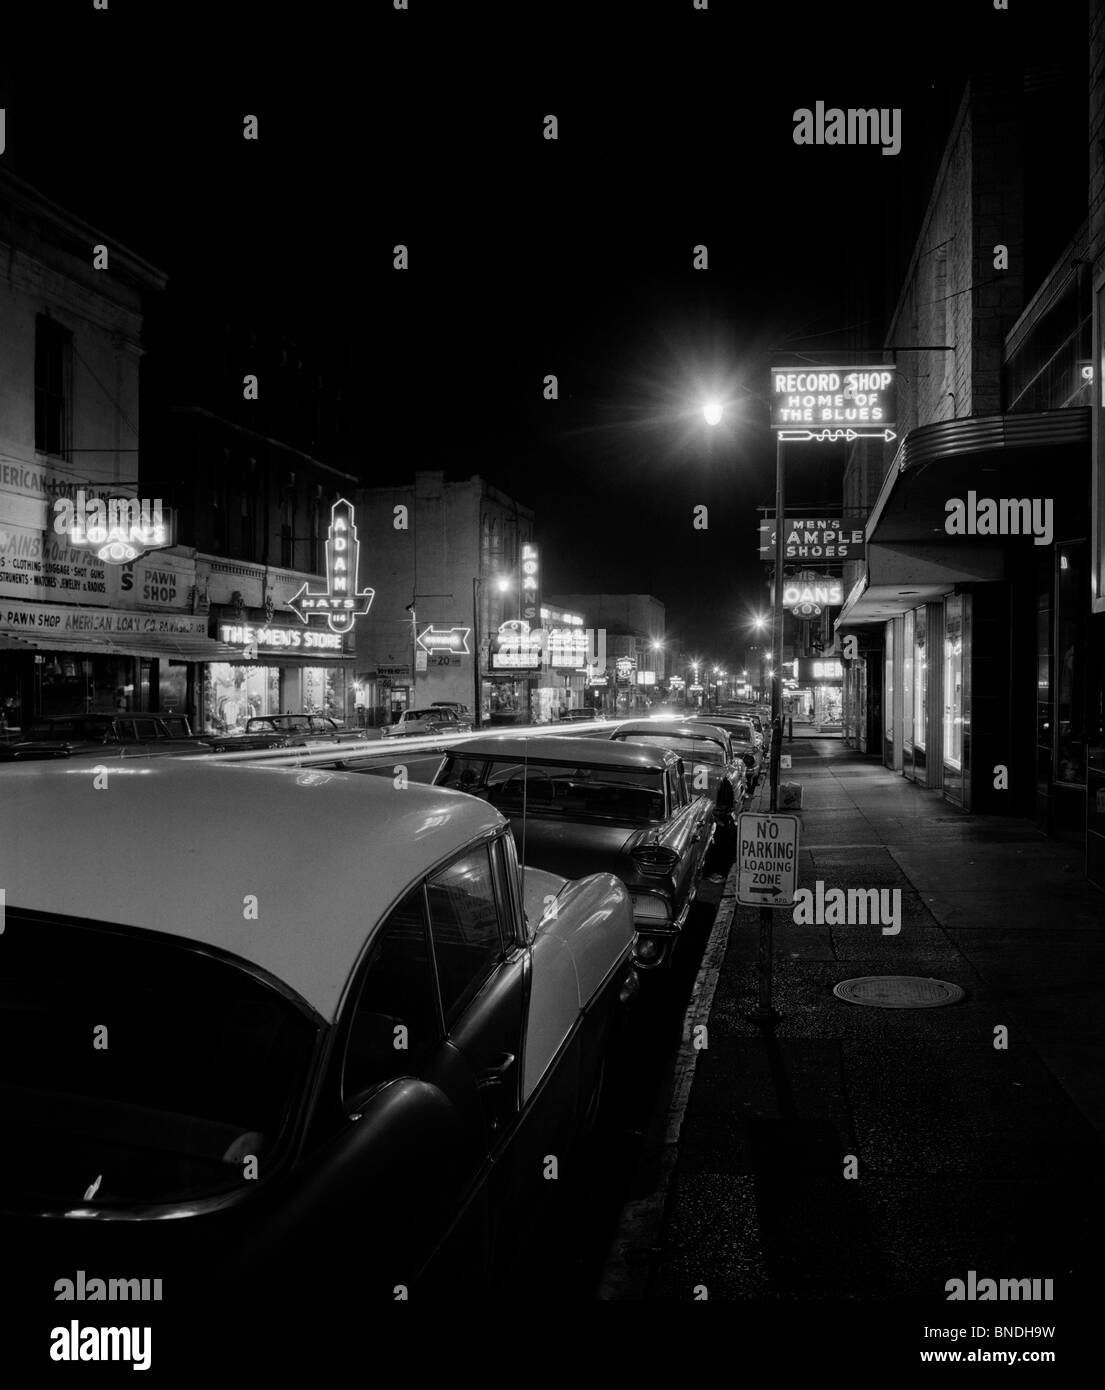 Cars parked in a street, Beale Street, Memphis, Tennessee, USA - Stock Image